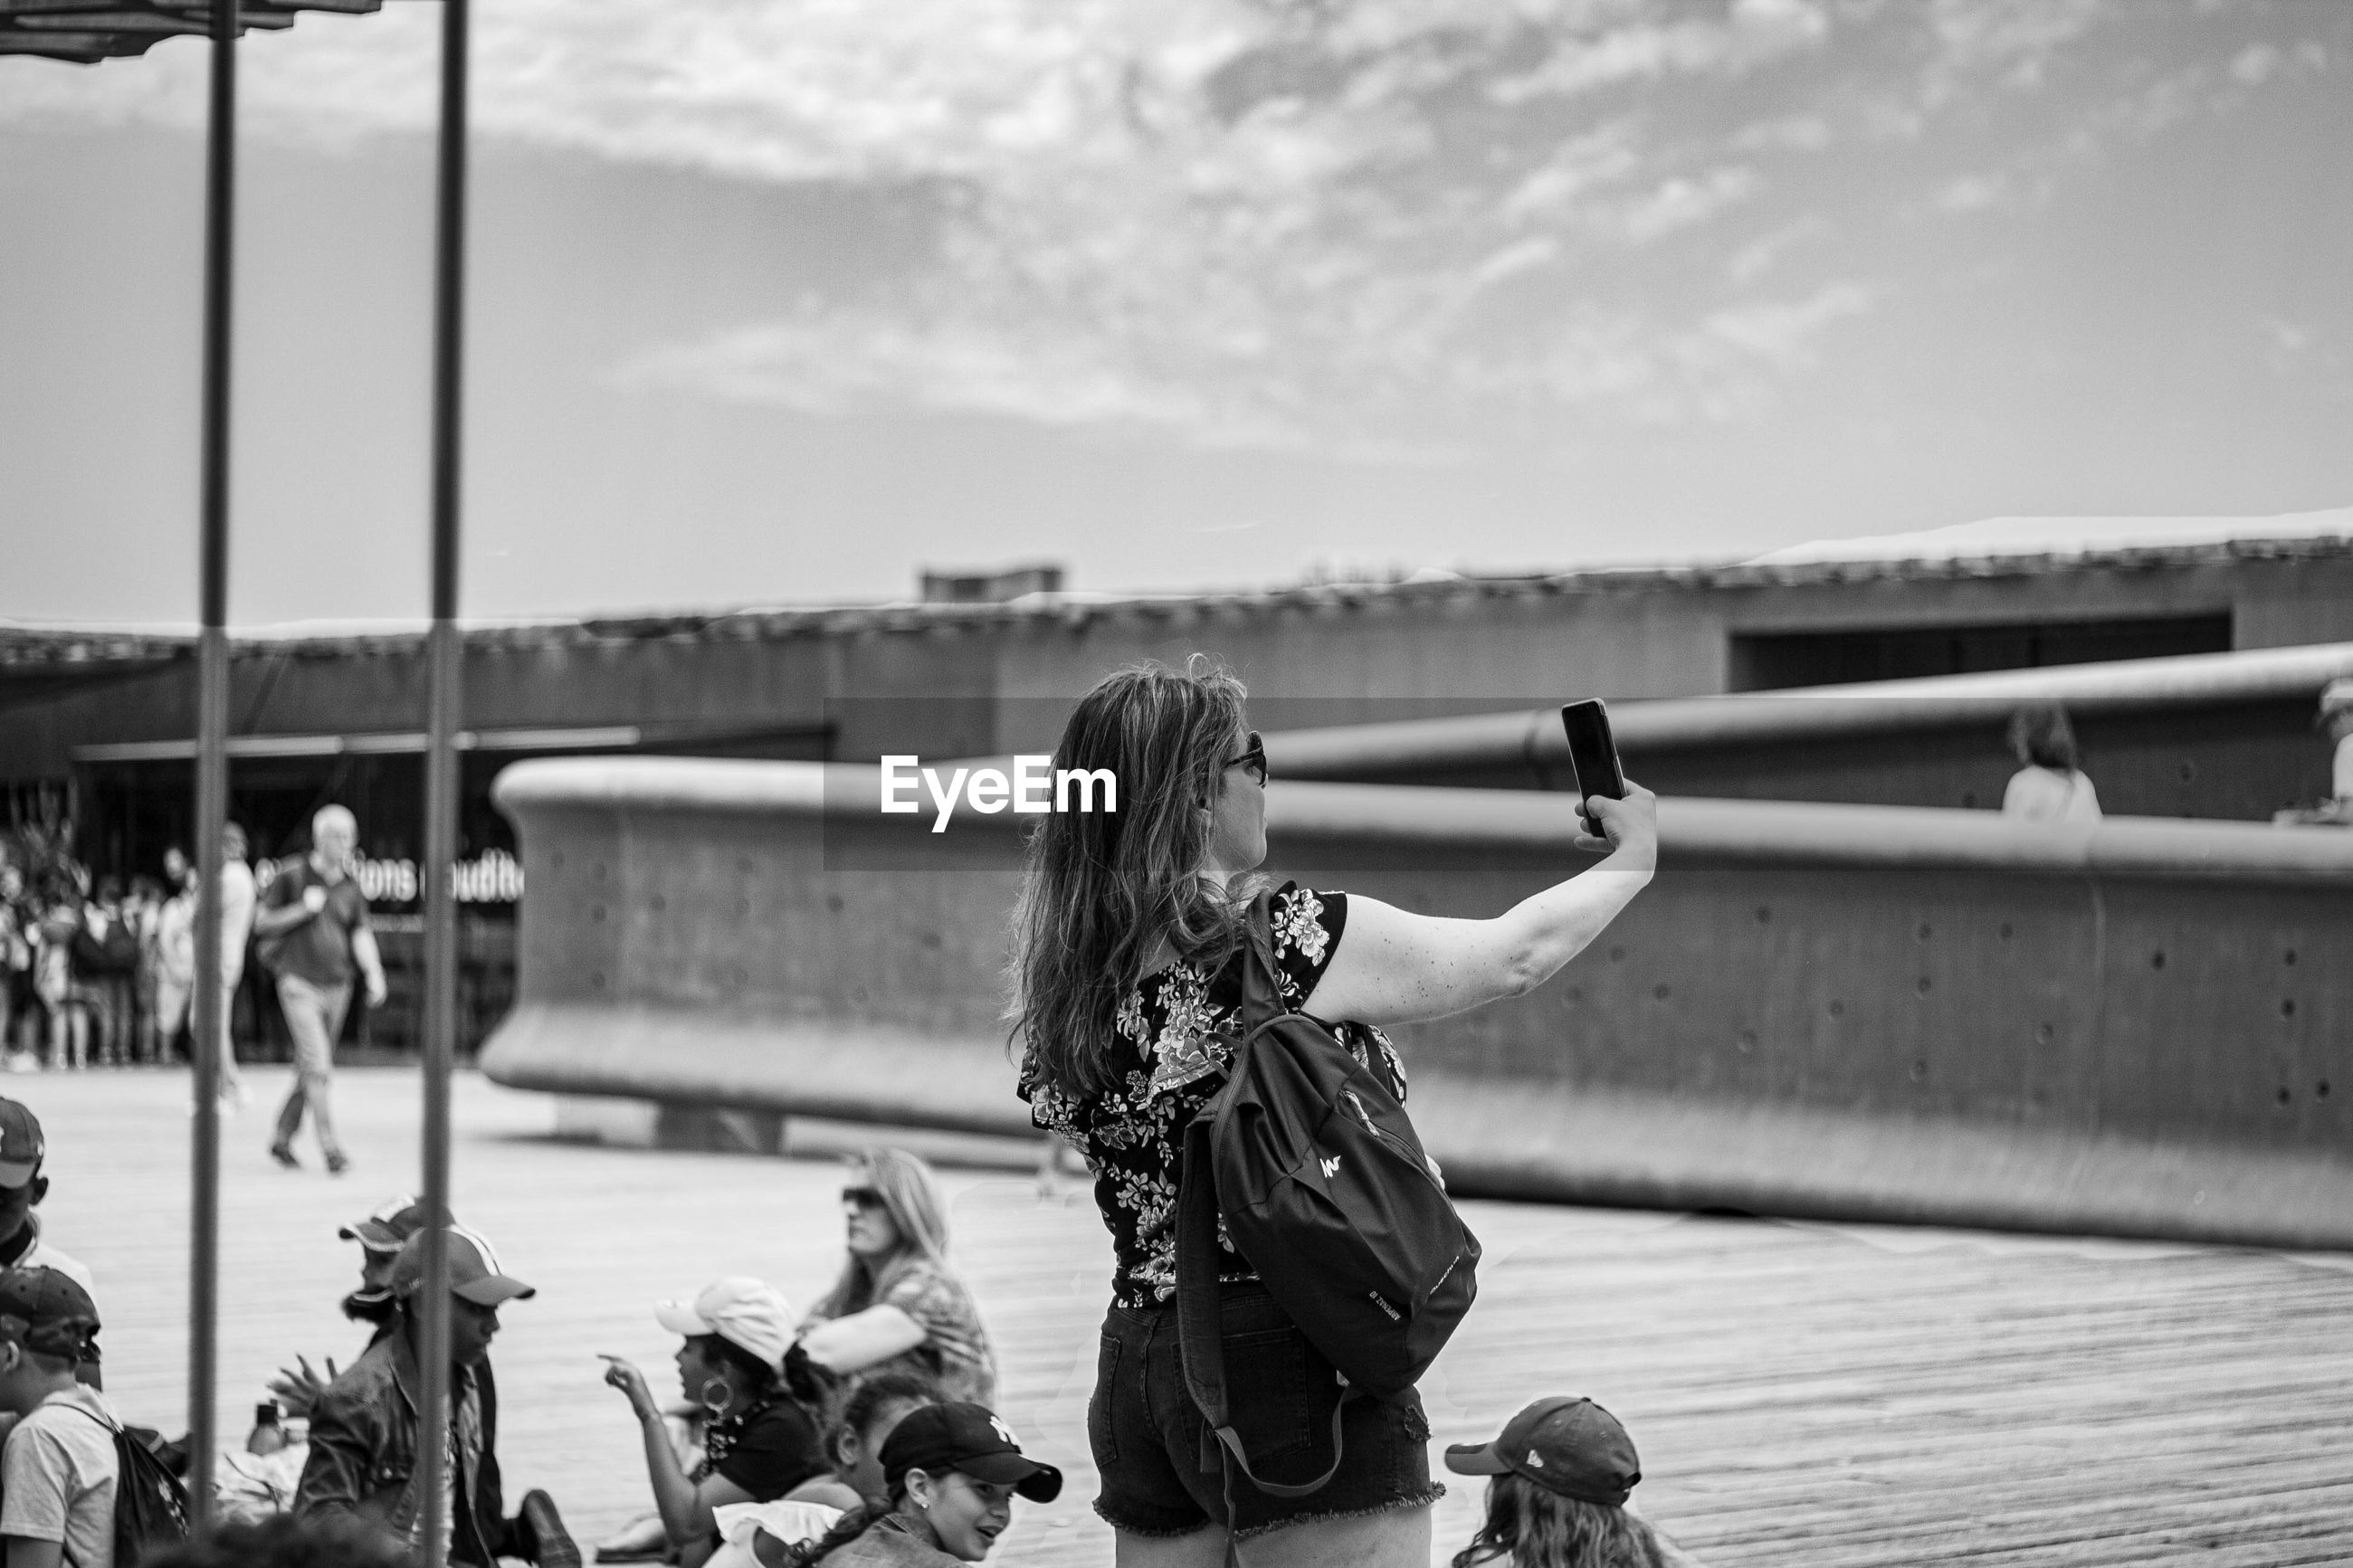 REAR VIEW OF WOMAN PHOTOGRAPHING WITH UMBRELLA ON RAILING